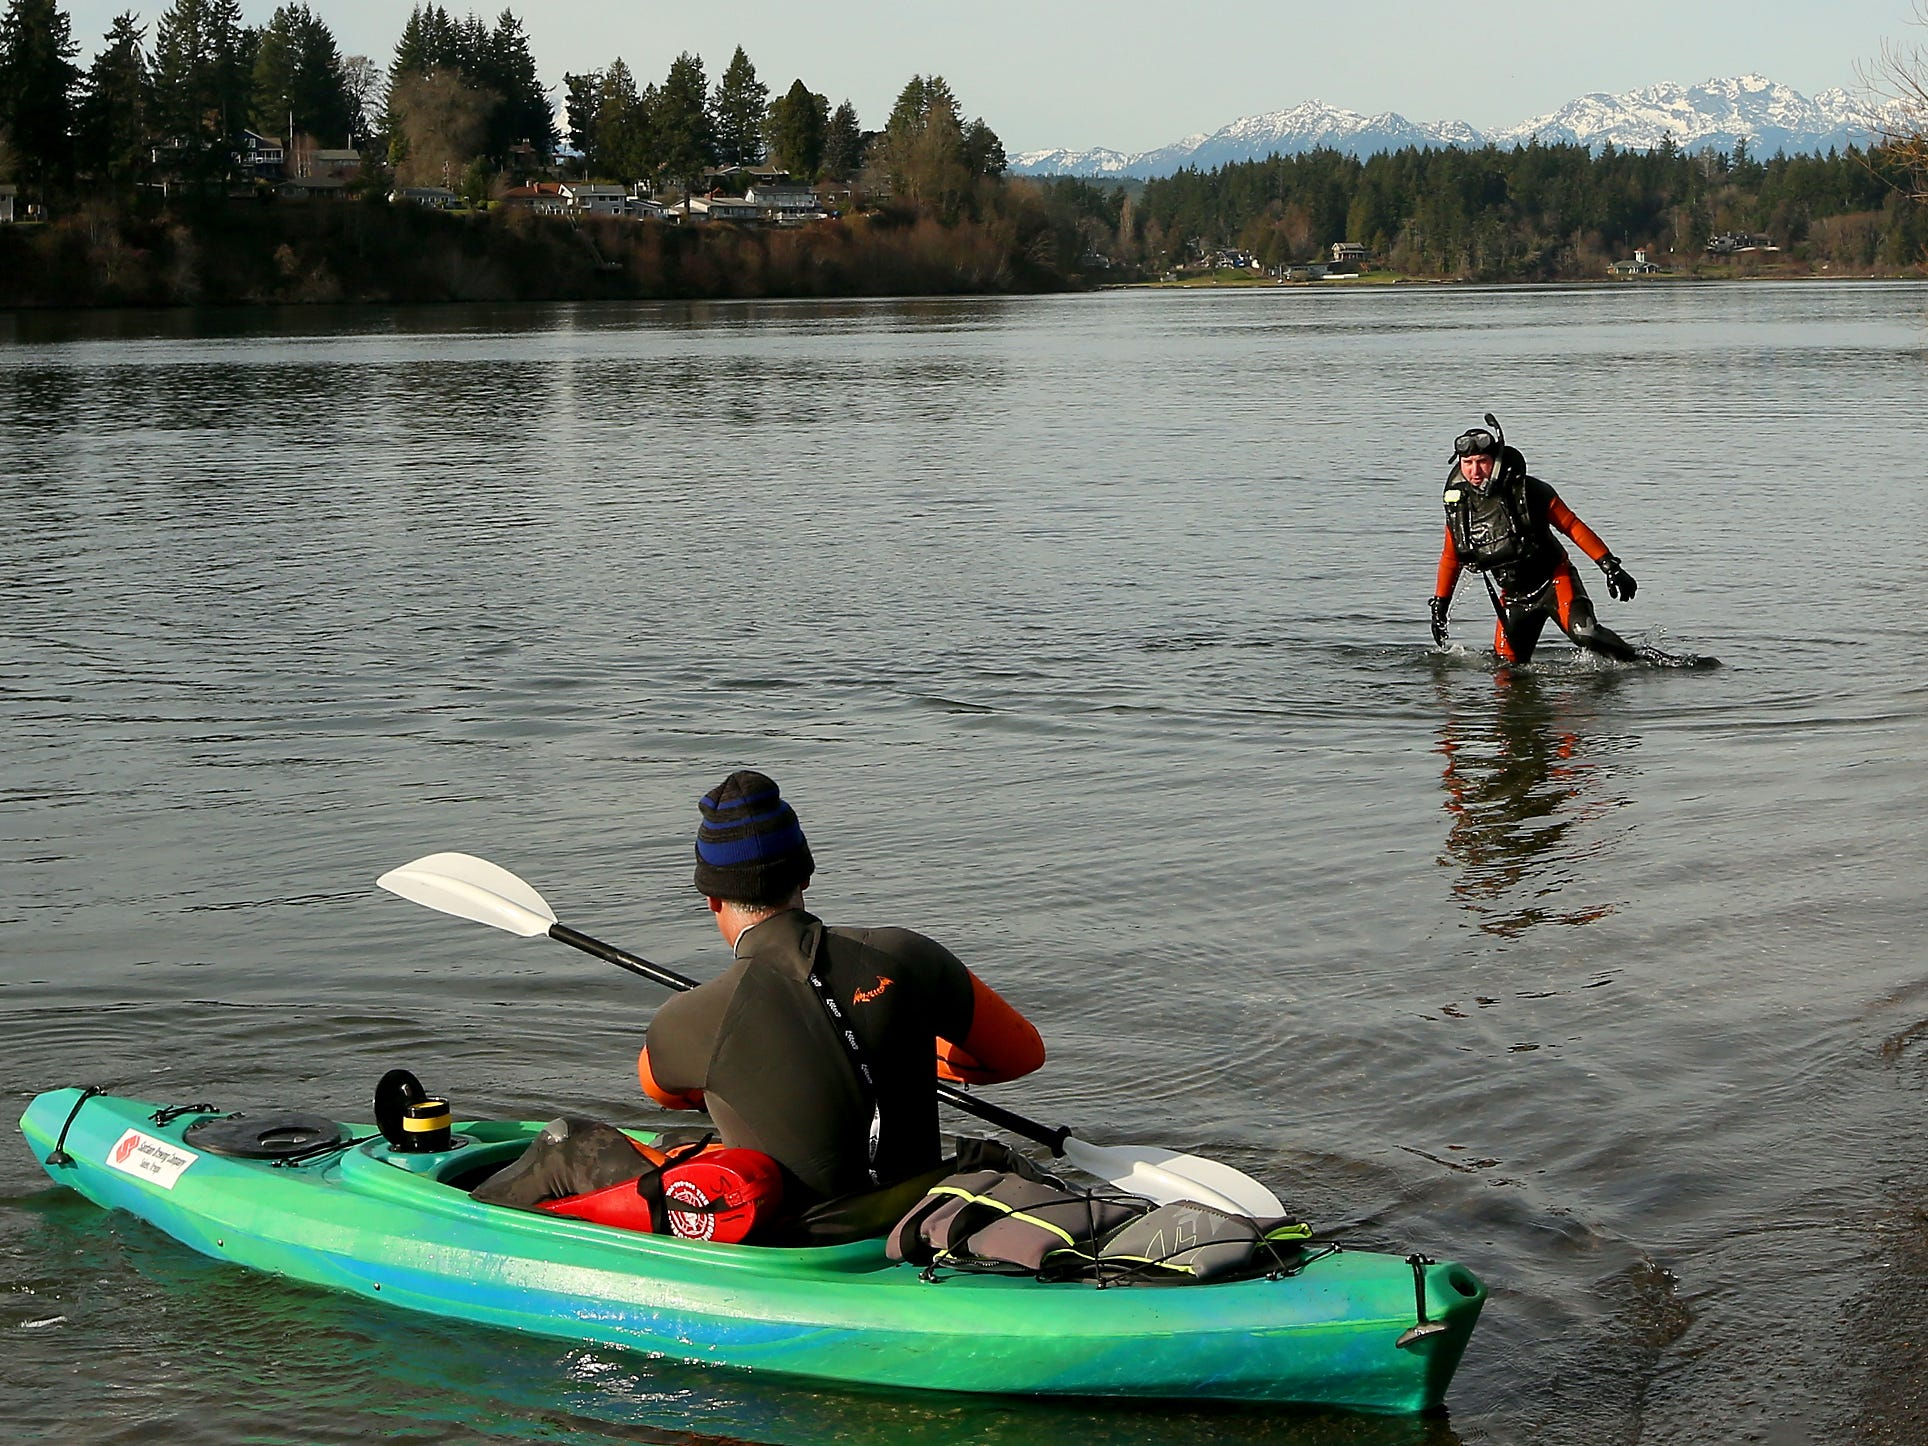 Bremerton firefighter Rickey Muttart (right) exits the water after taking part in rescue swimmer training with Lt. Alex Magallon (in the kayak) at the Lions Park Boat Launch in Bremerton on Monday, January 28, 2019.